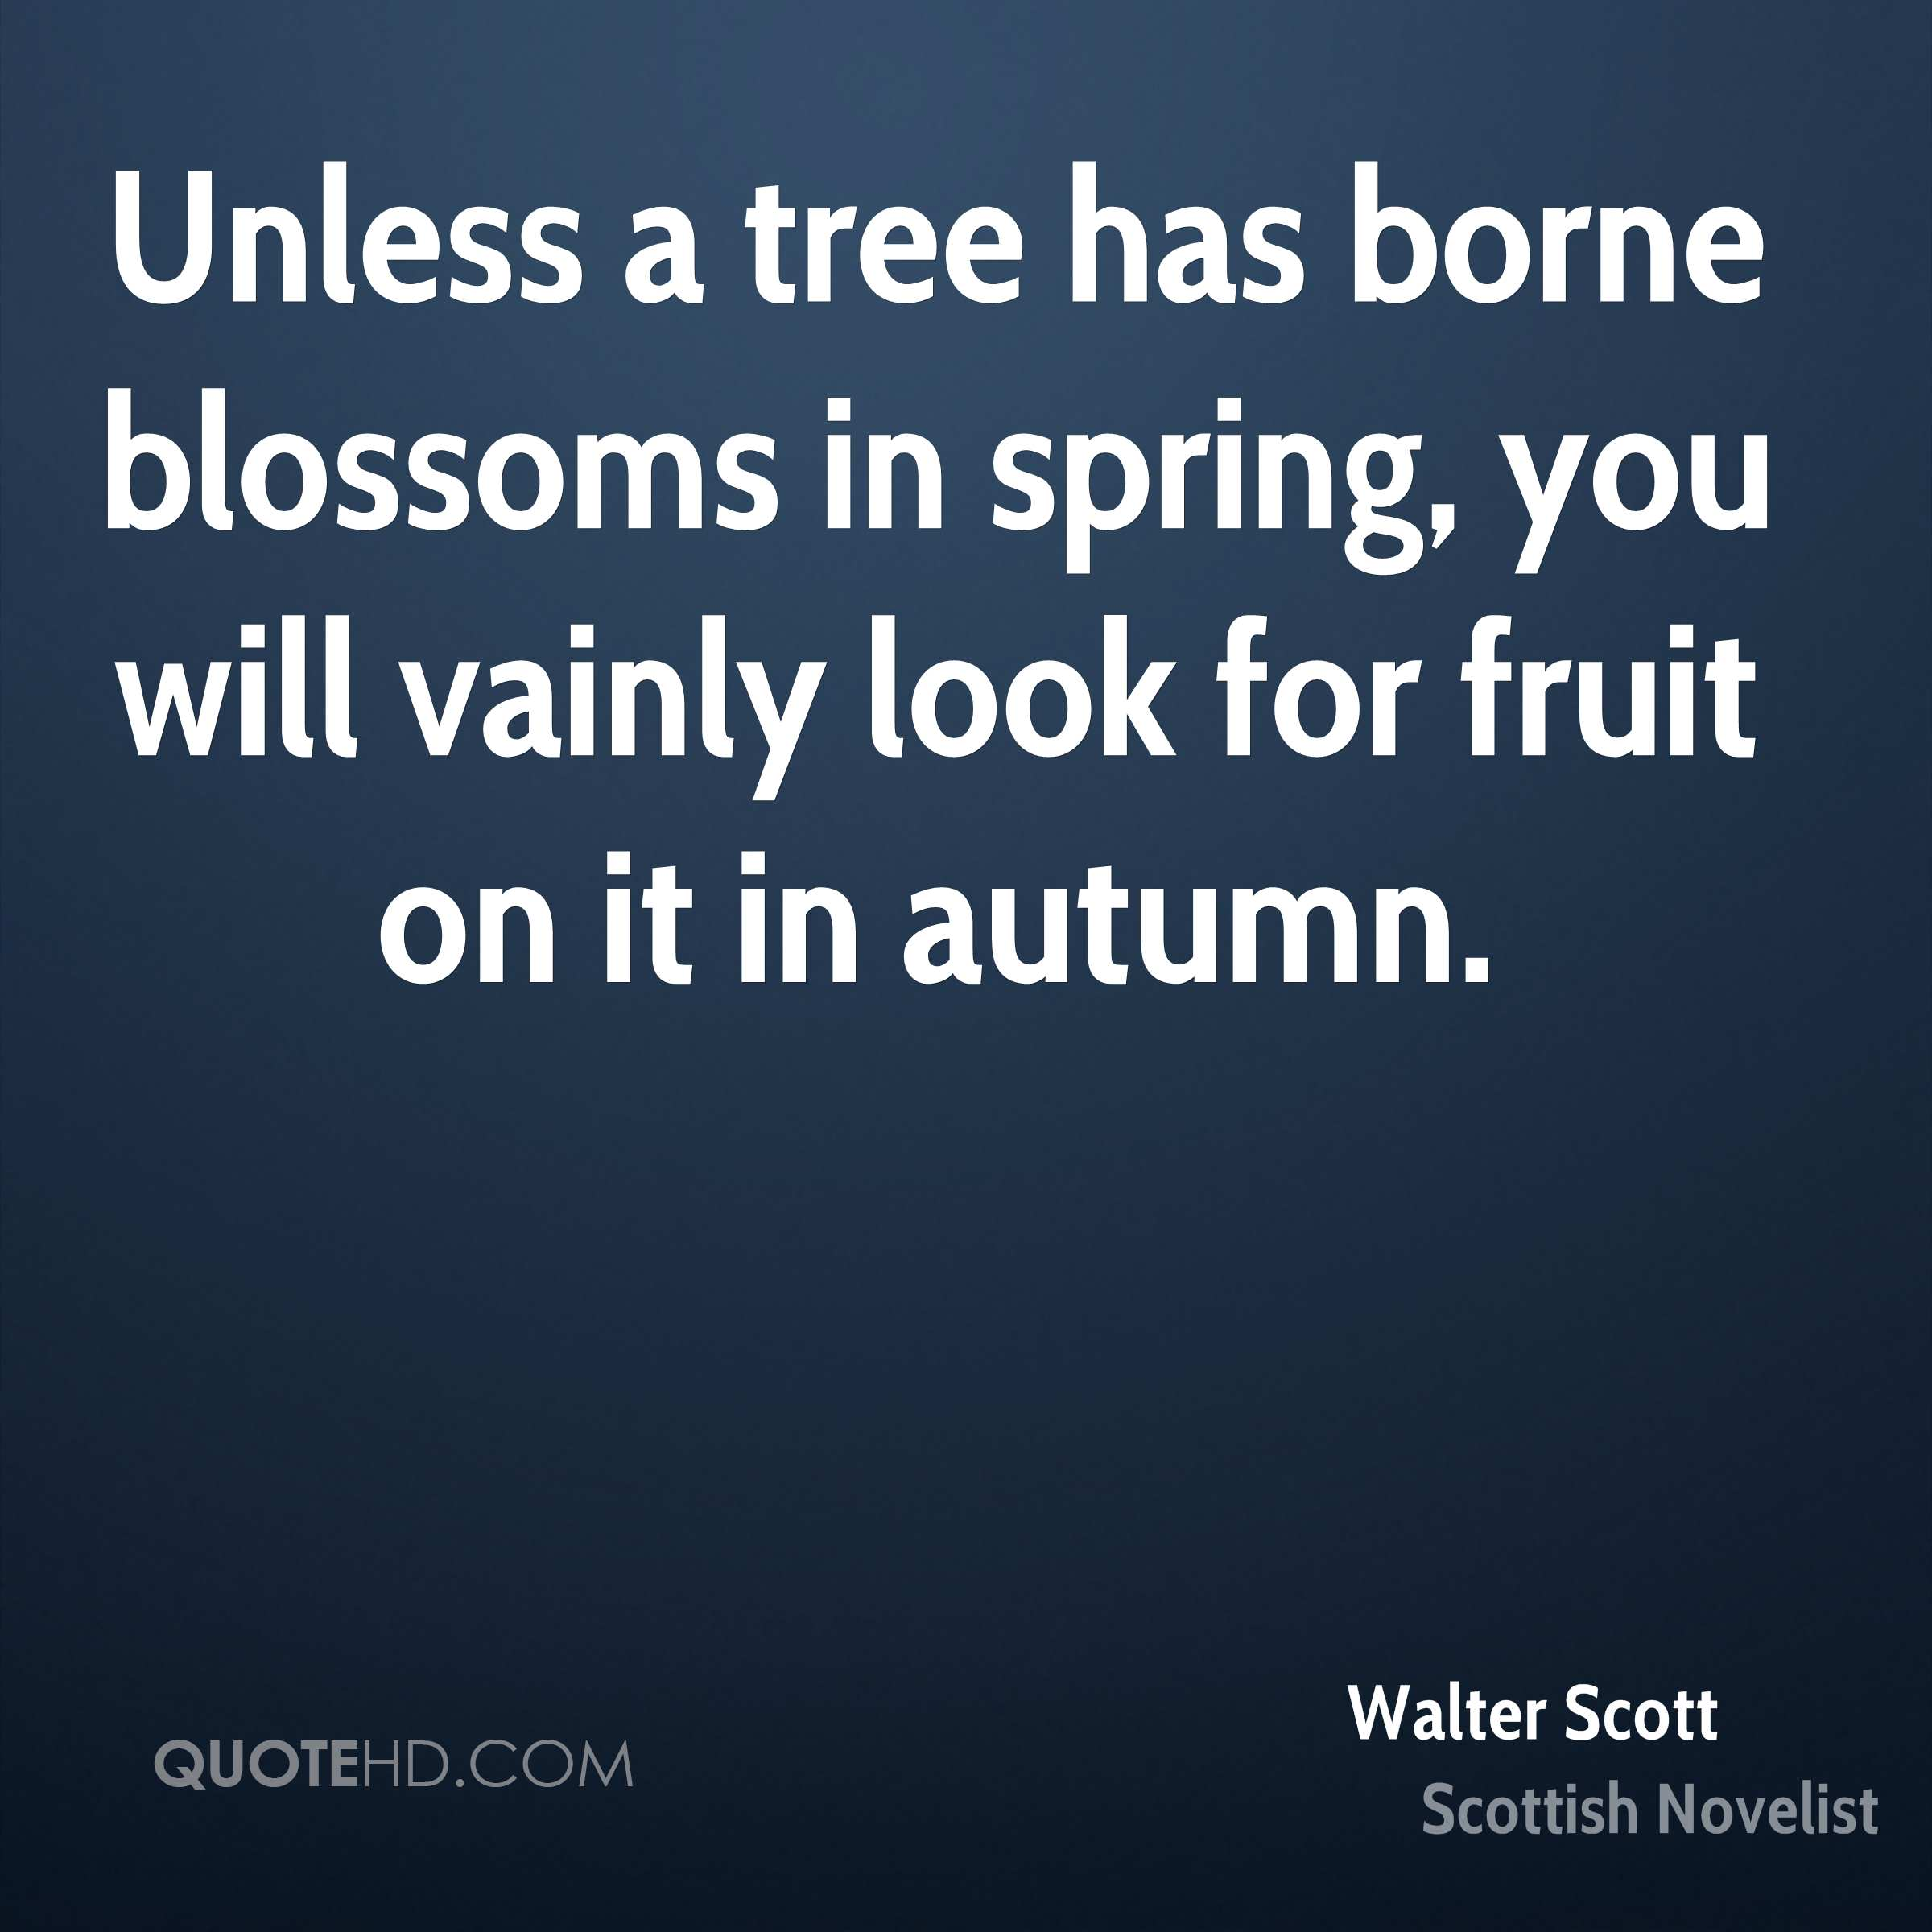 Unless a tree has borne blossoms in spring, you will vainly look for fruit on it in autumn.